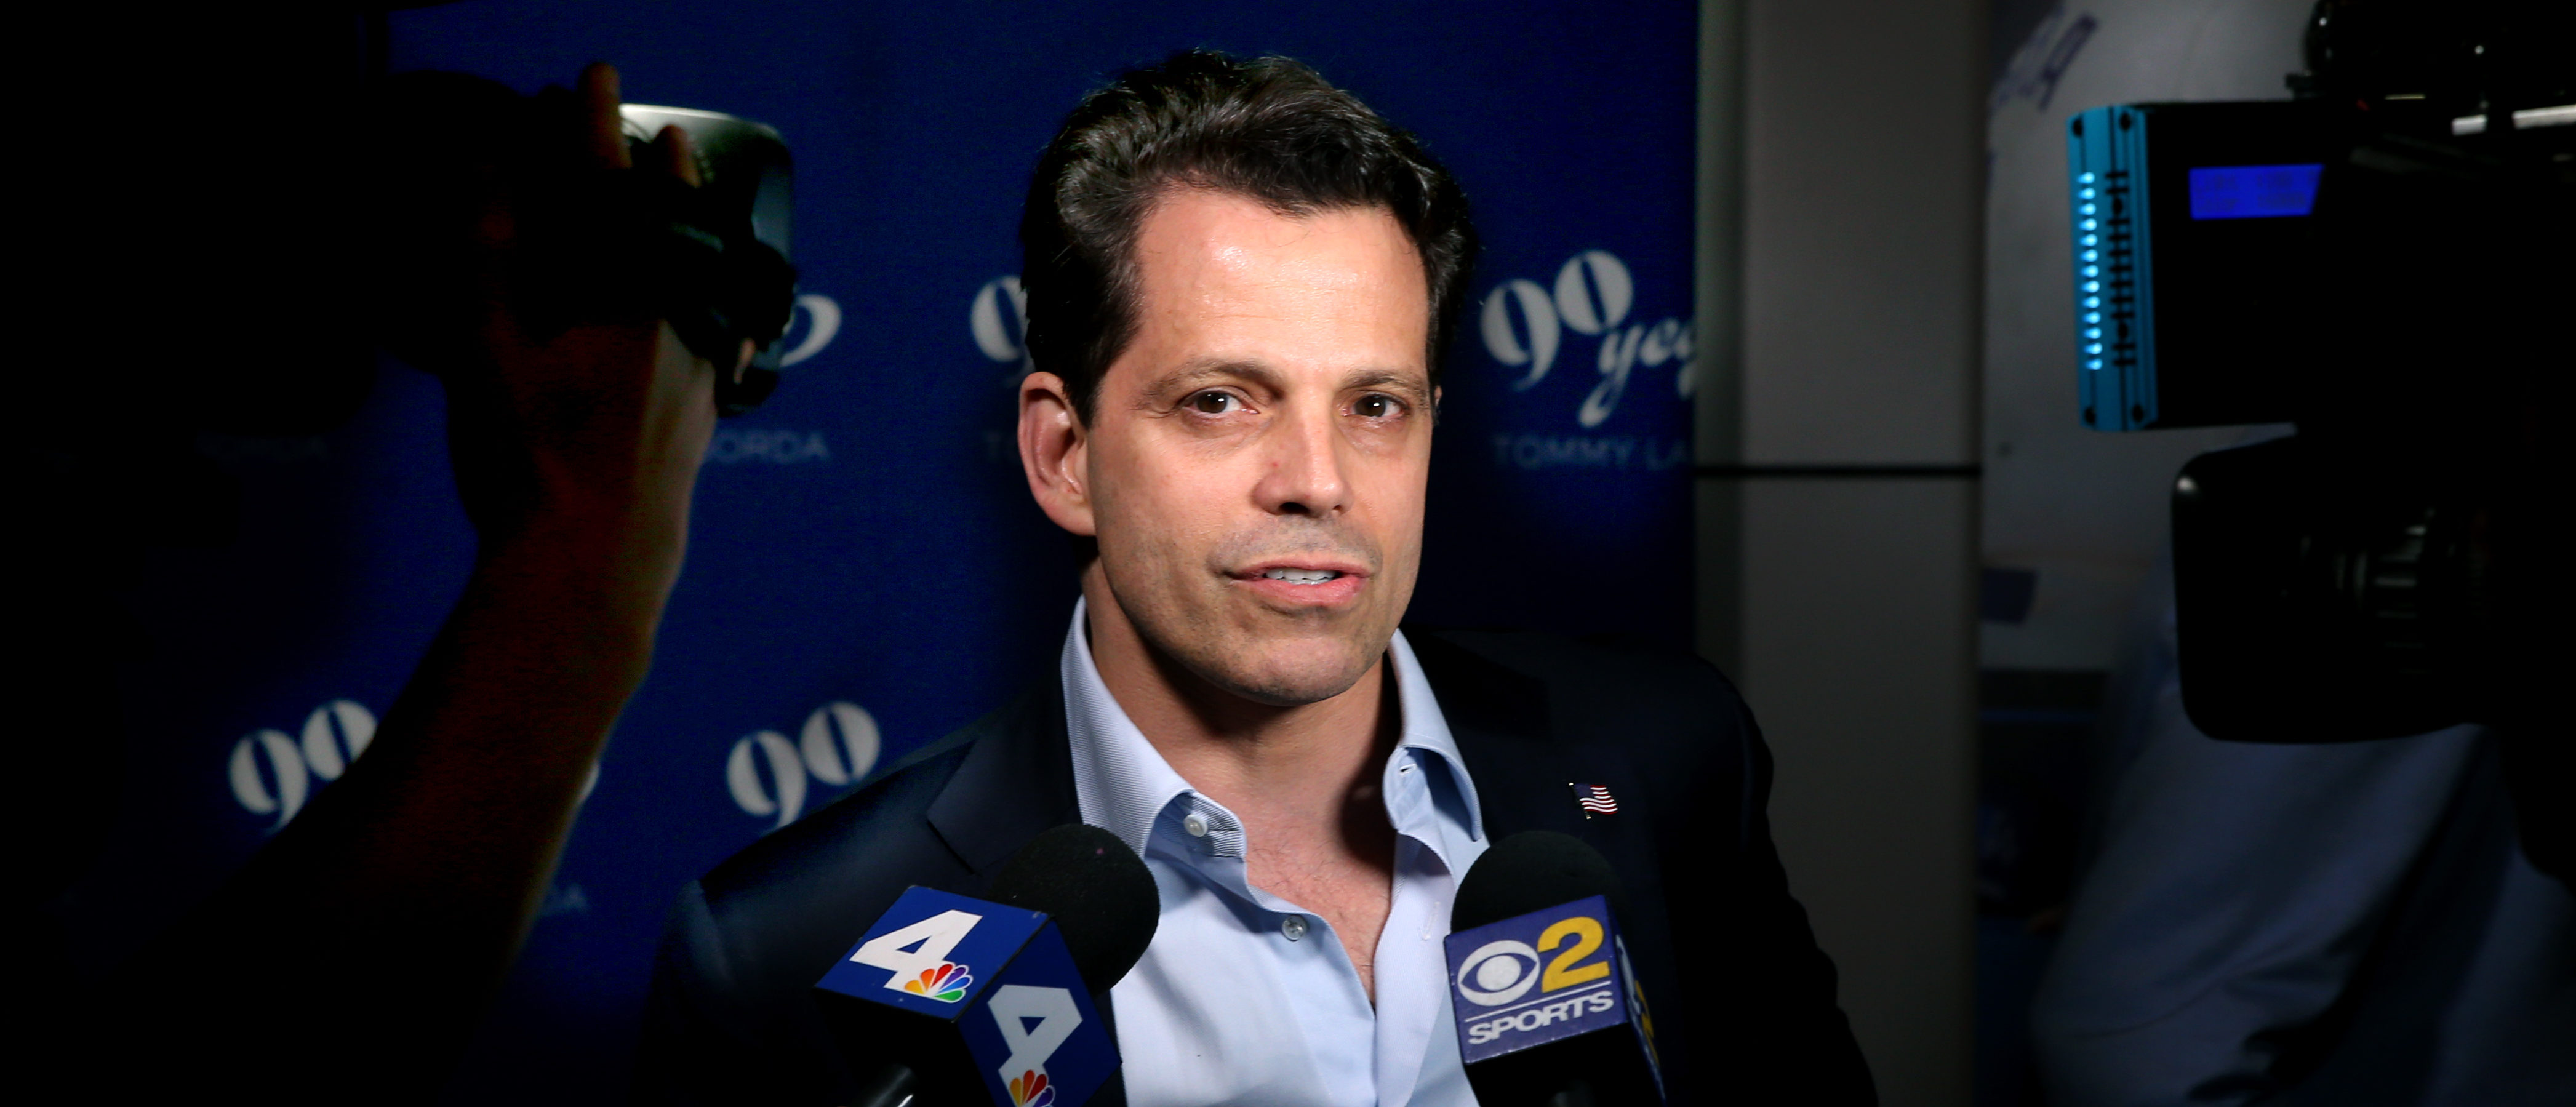 LOS ANGELES, CA - SEPTEMBER 24: Anthony Scaramucci at Tommy Lasorda's 90th Birthday Celebration at The Getty Center on September 24, 2017 in Los Angeles, California. (Photo by Phillip Faraone/Getty Images for Tommy Lasorda)